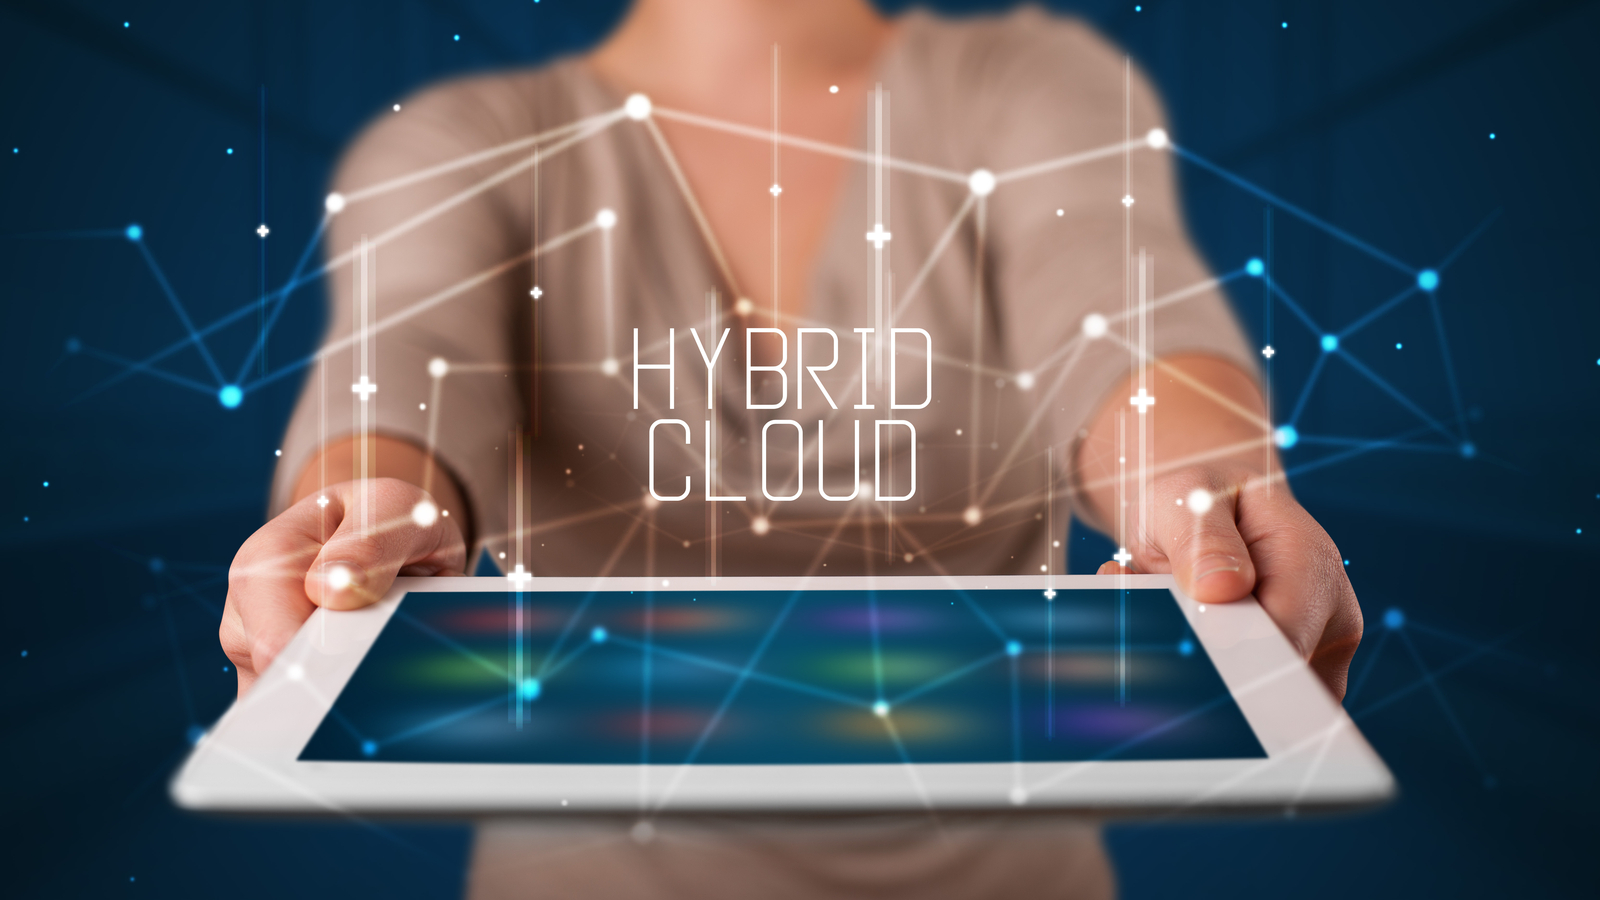 LTI and IBM expand Global Alliance to help organizations accelerate Digital Transformation with the hybrid Cloud